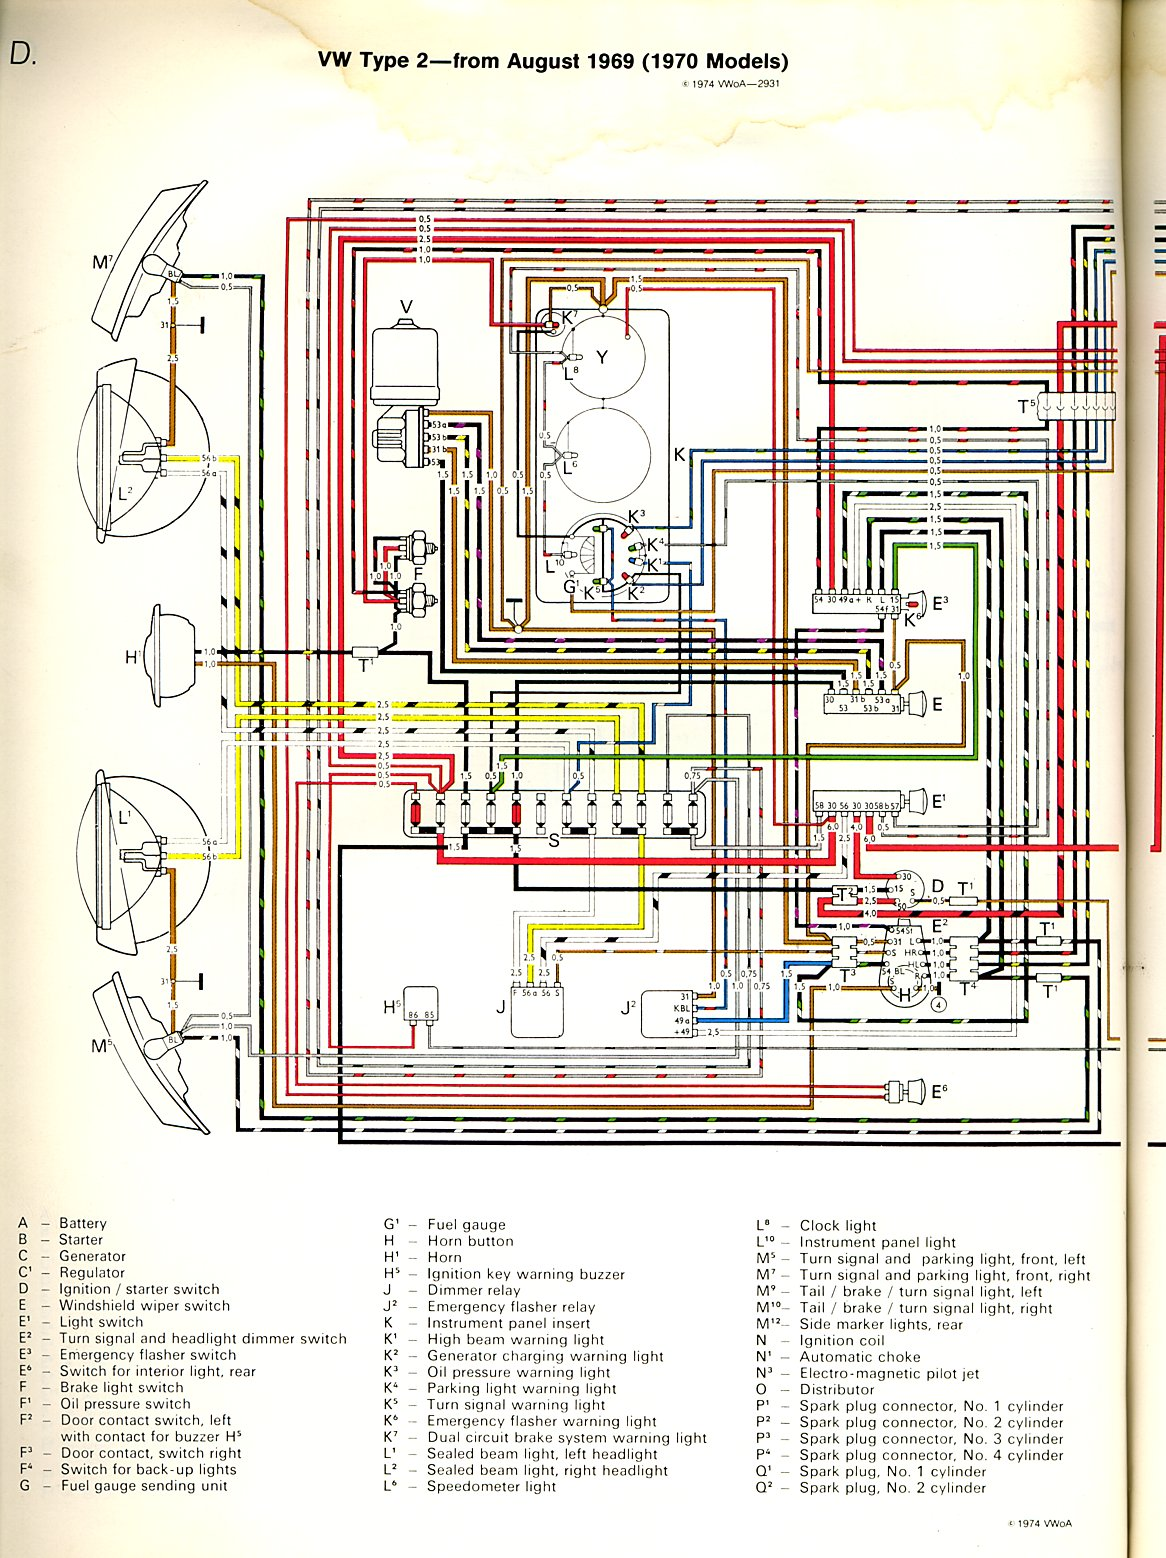 baybus_70a bus wiring diagram vw wiring harness diagram \u2022 wiring diagrams j 1971 vw bus wiring diagram at bayanpartner.co